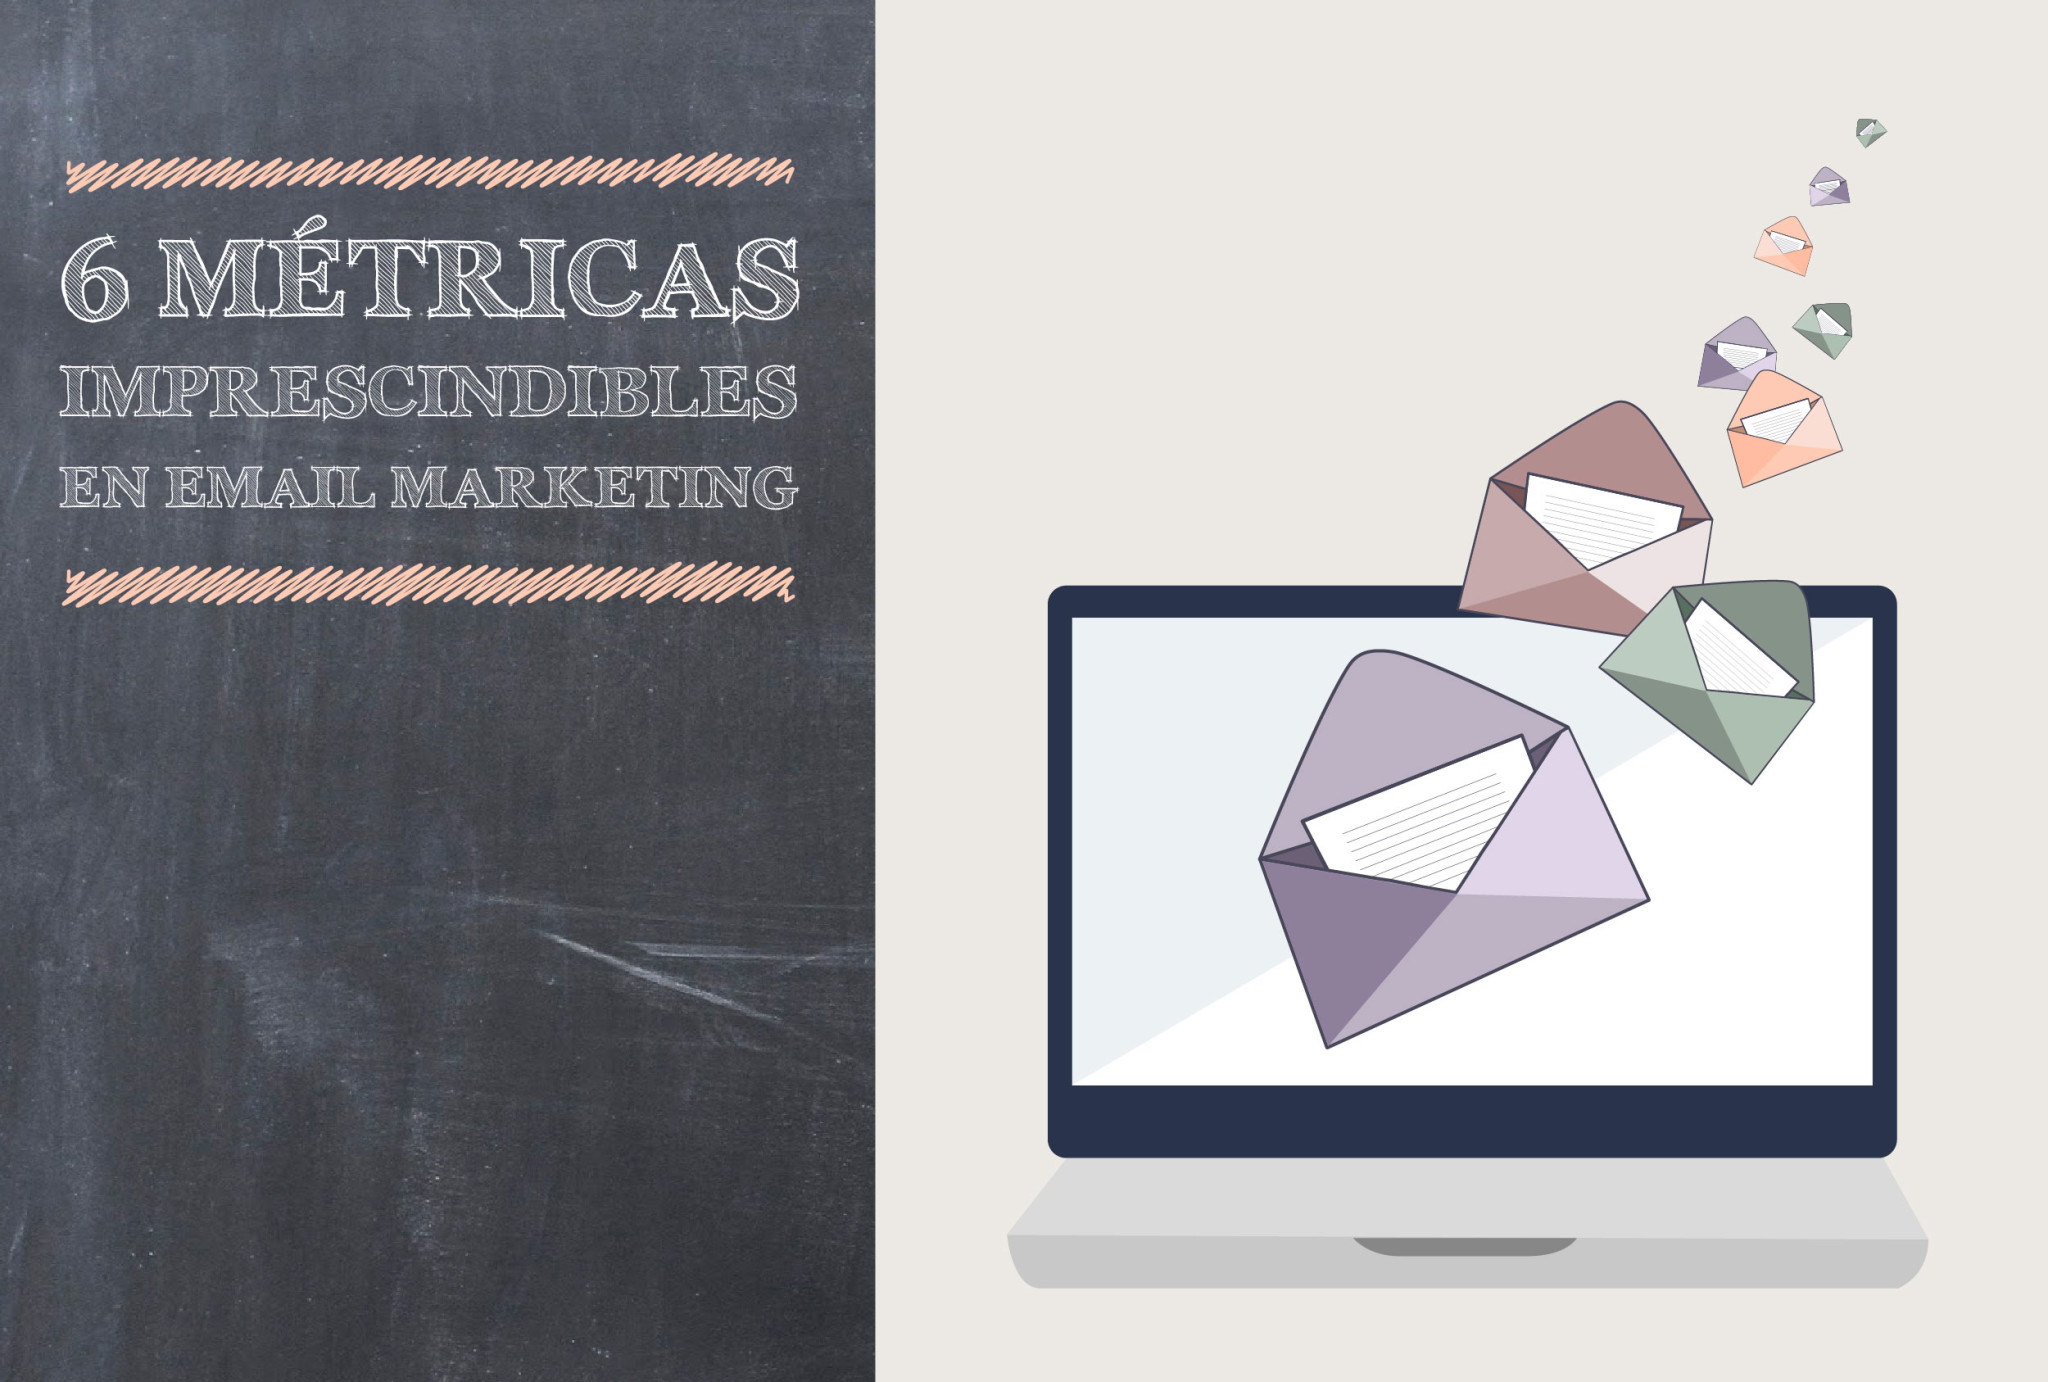 6 métricas imprescindibles en email marketing